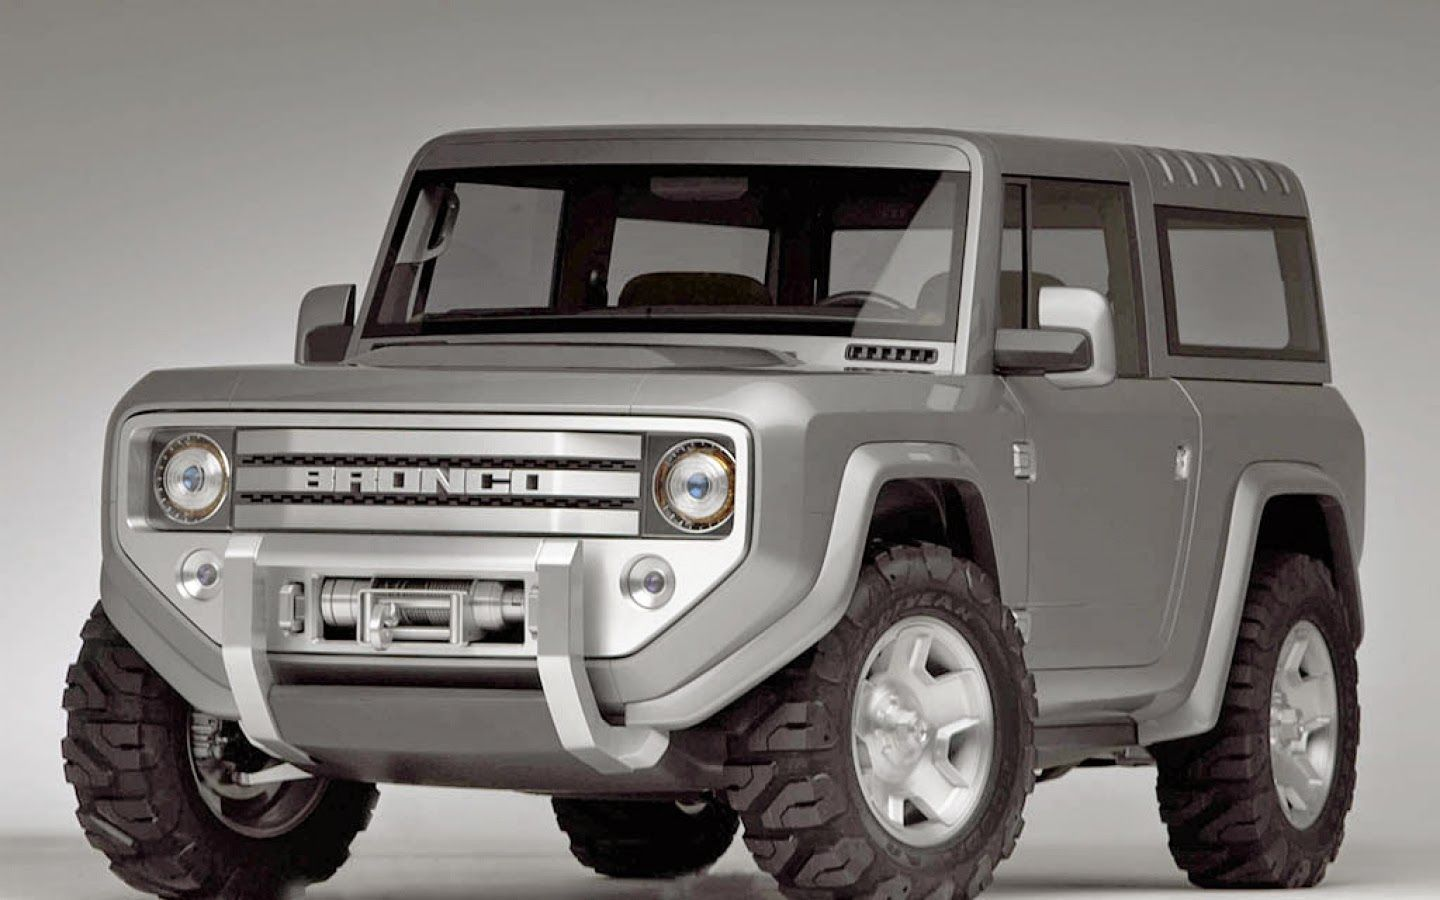 2017 Ford Bronco Specs, Price and Release Date The